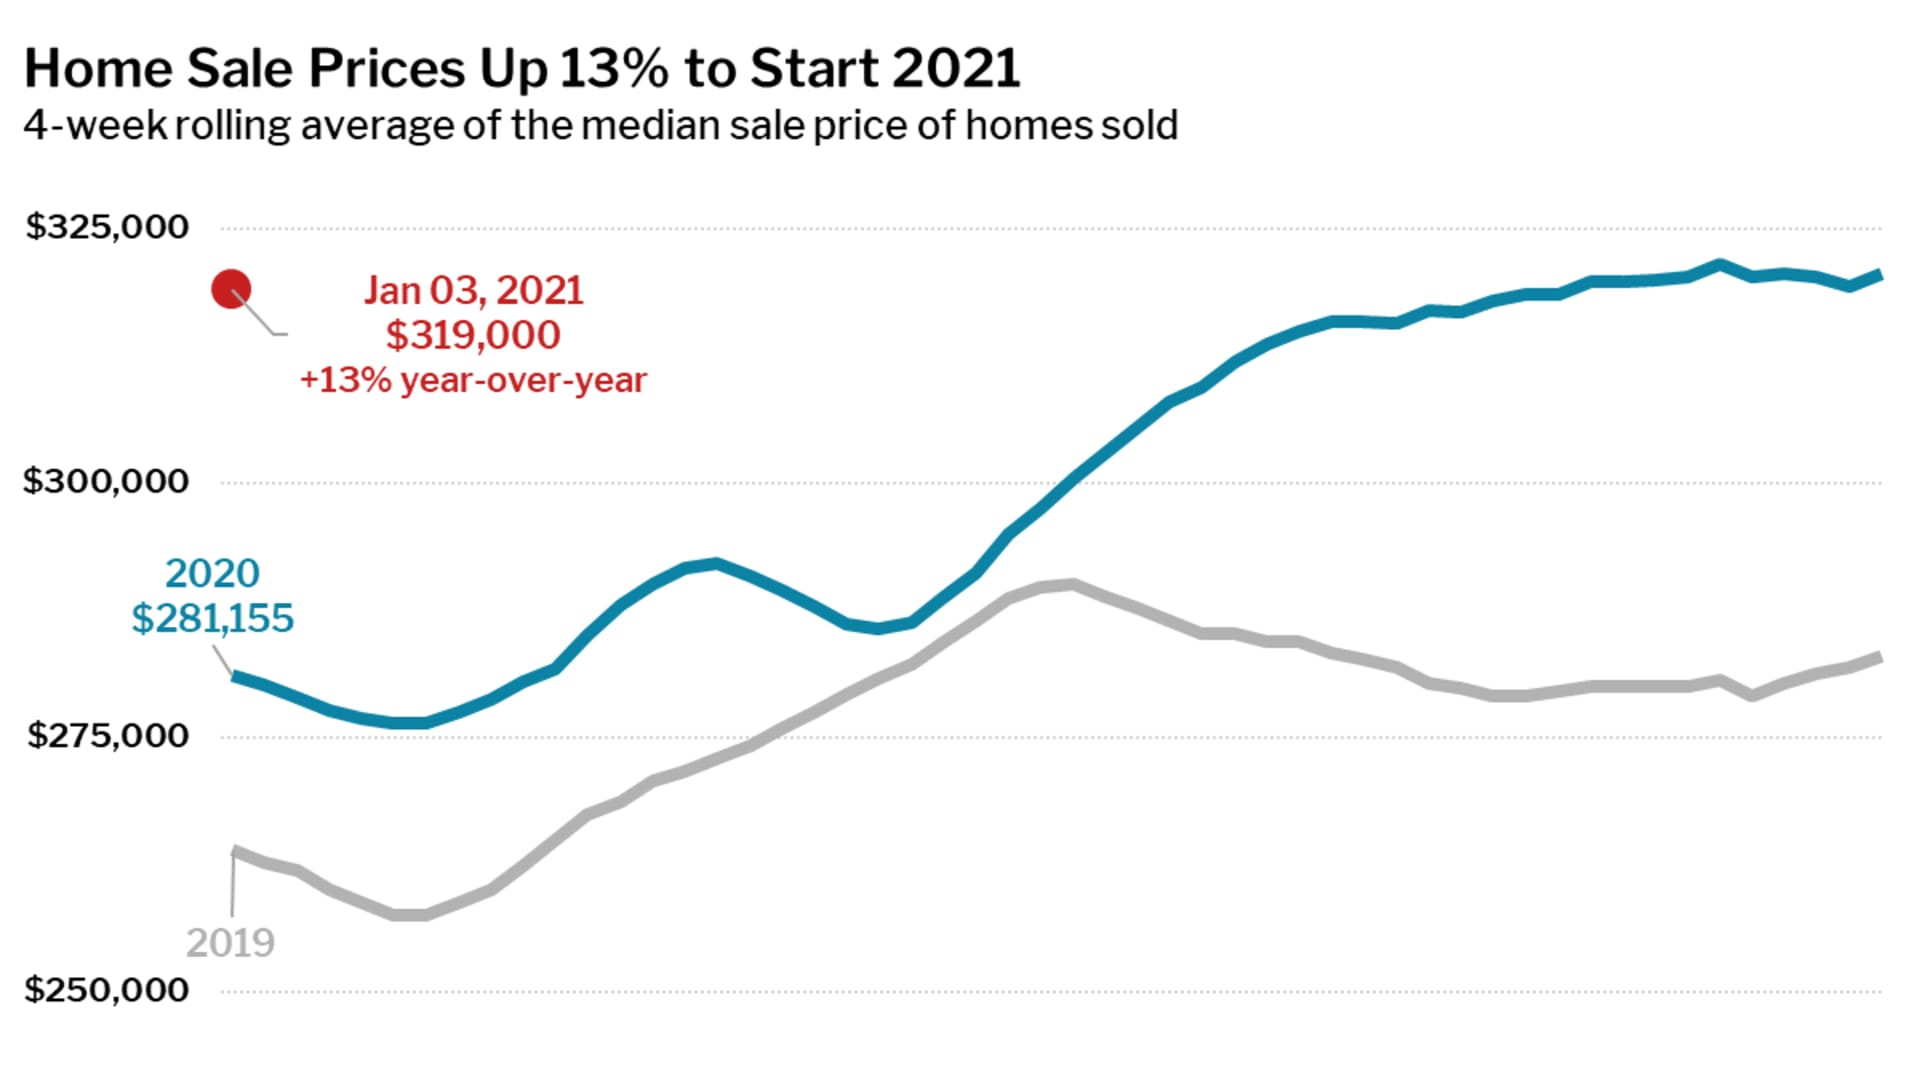 Redfin finds that the median home sale price increased 13% year over year to $319,000 as of January 3, 2020.